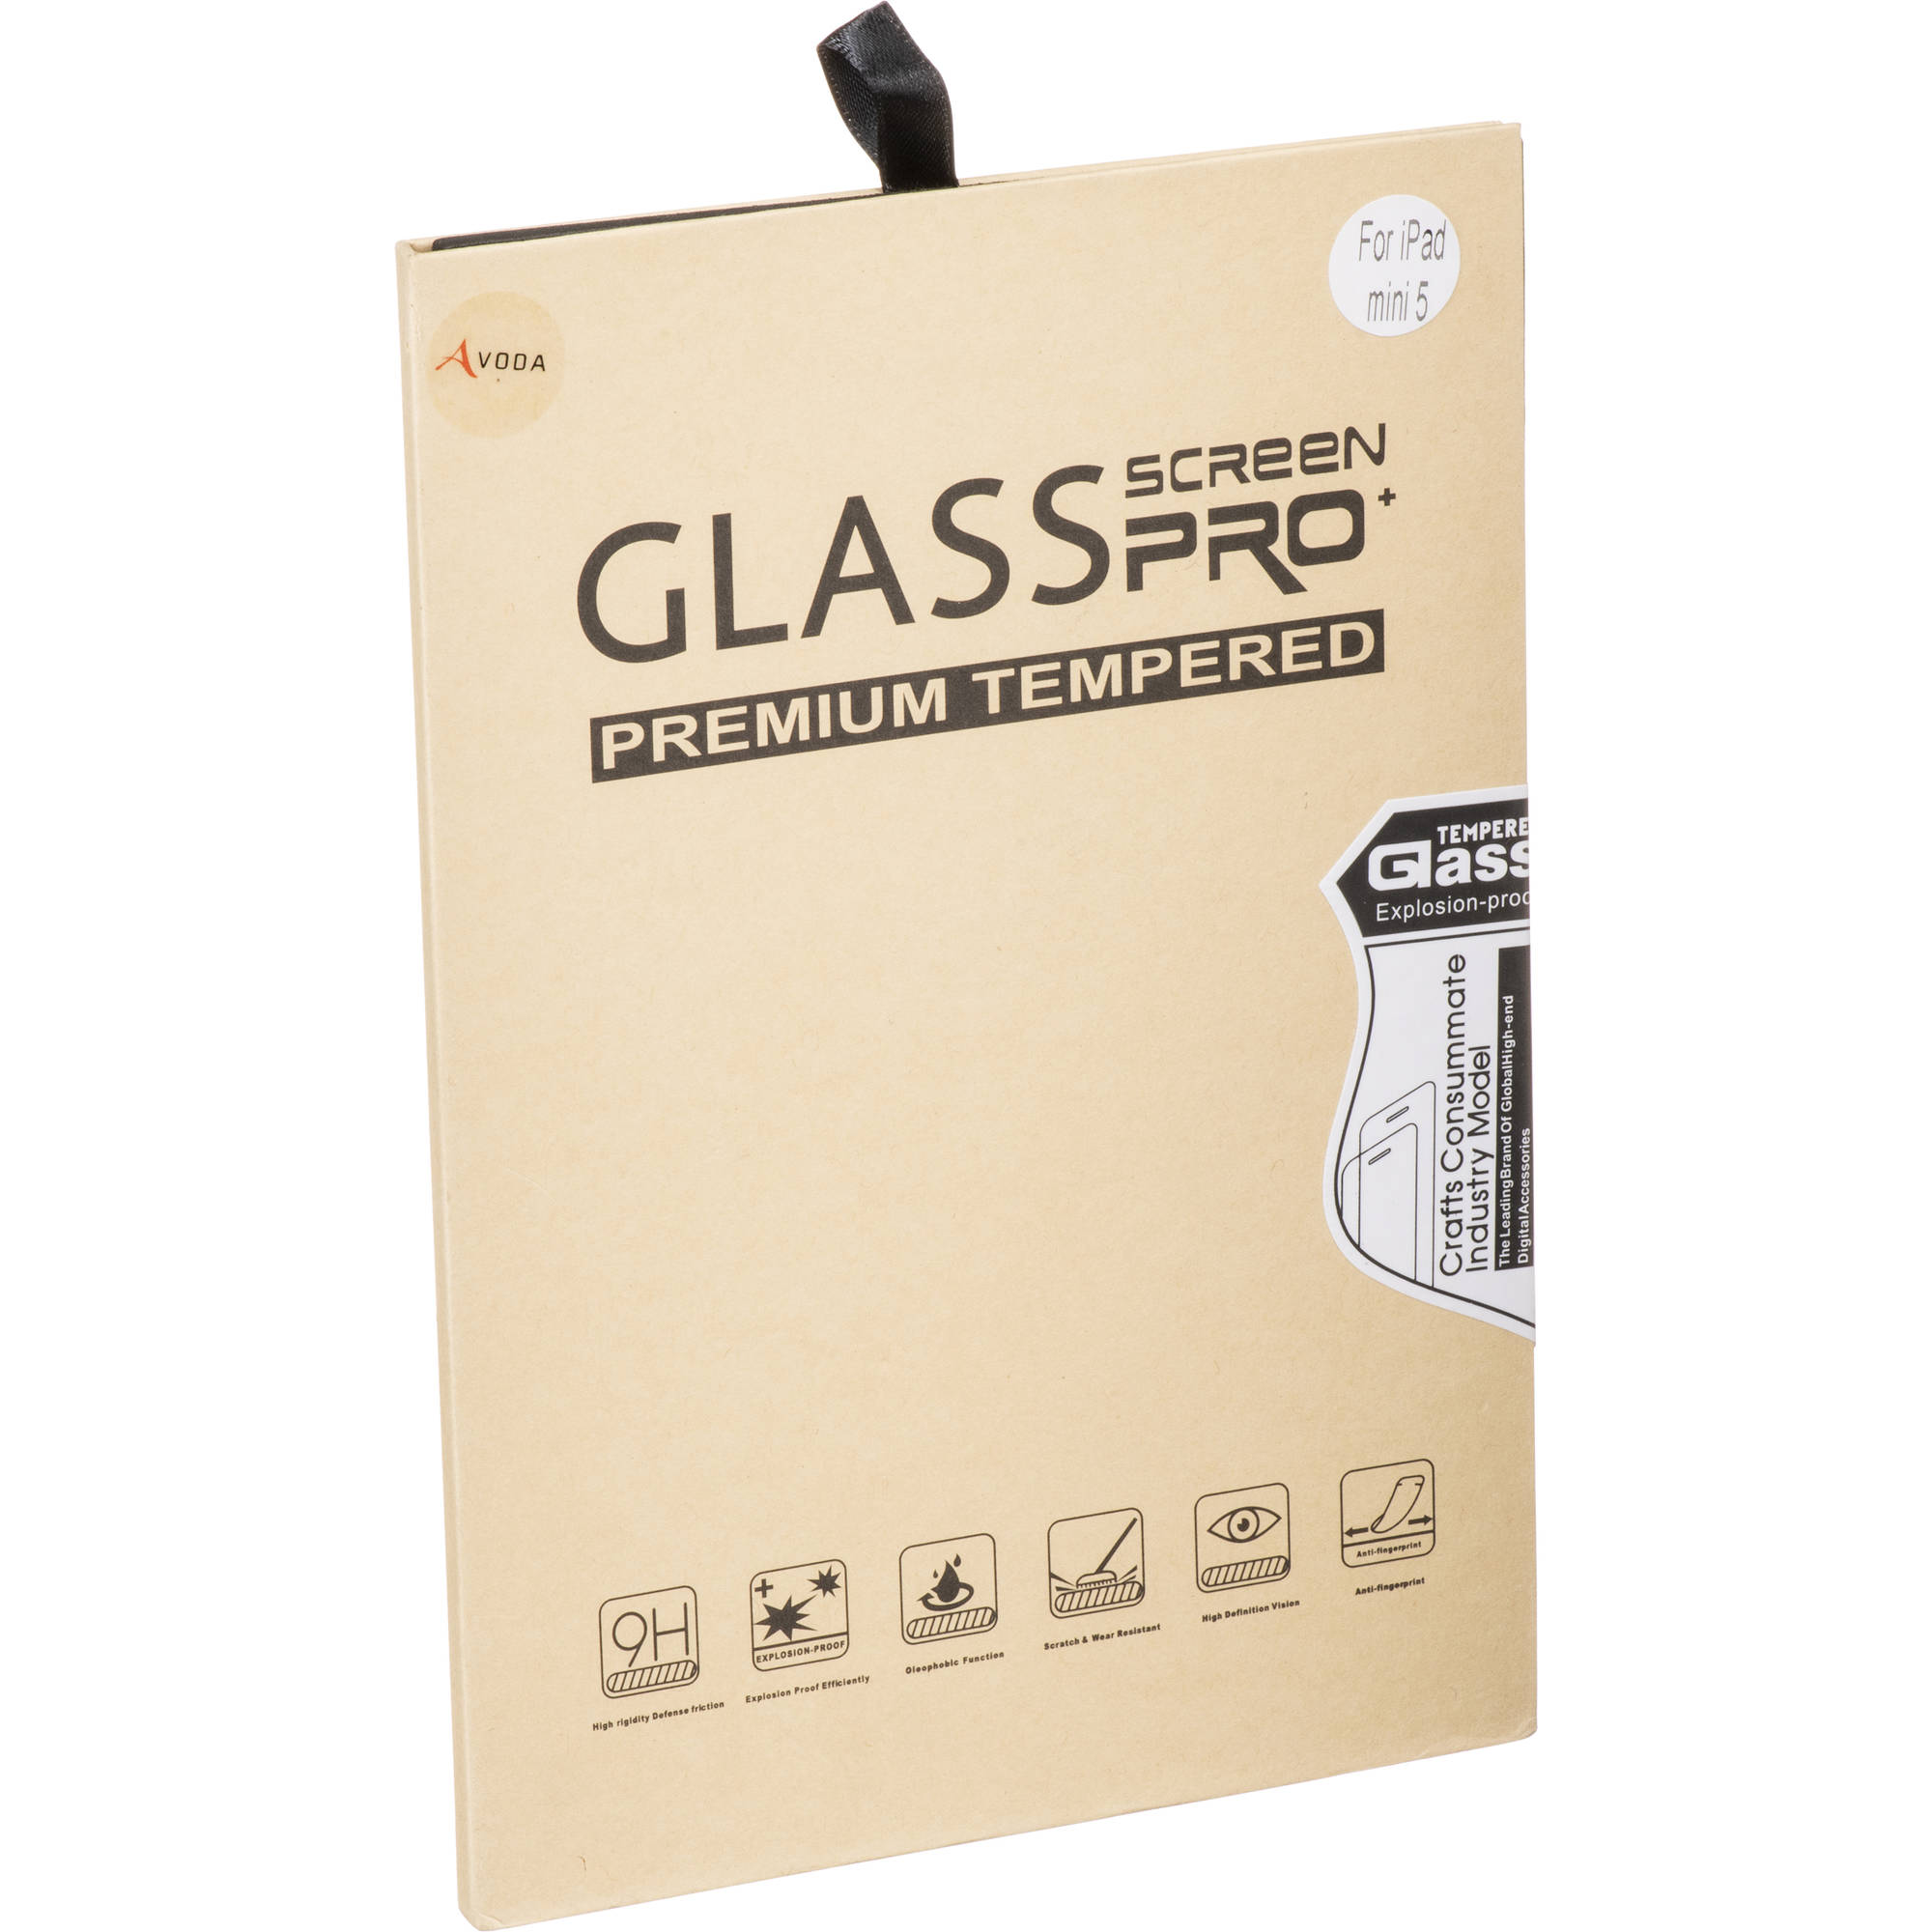 AVODA Clear Tempered Glass Screen Protector for iPad mini (Early 2019)